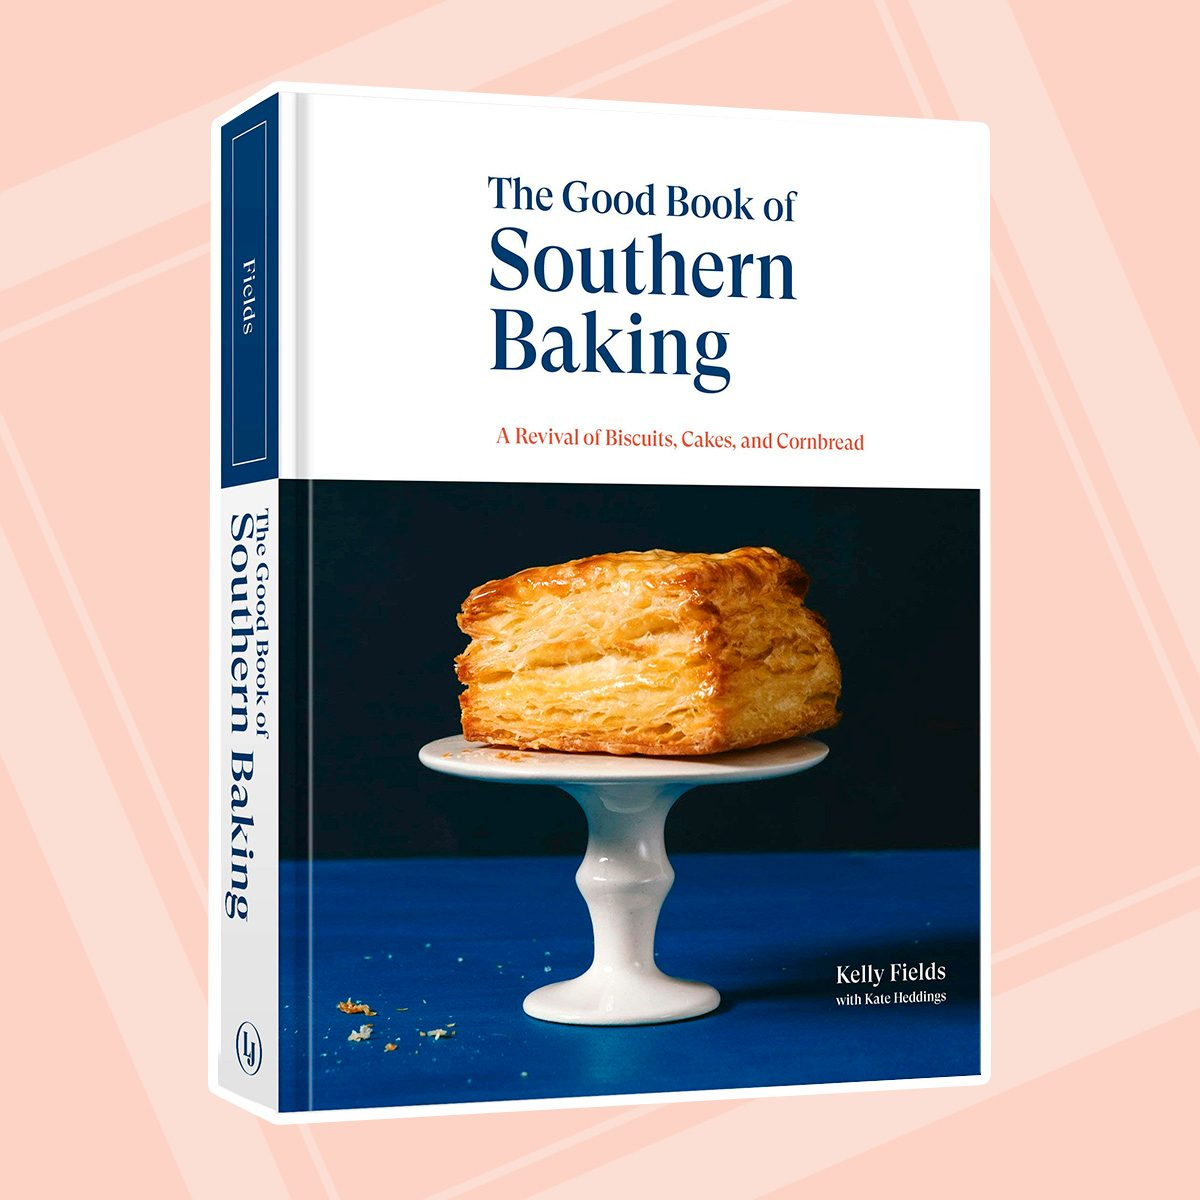 The Good Book of Southern Baking: A Revival of Biscuits, Cakes, and Cornbread Hardcover – September 8, 2020